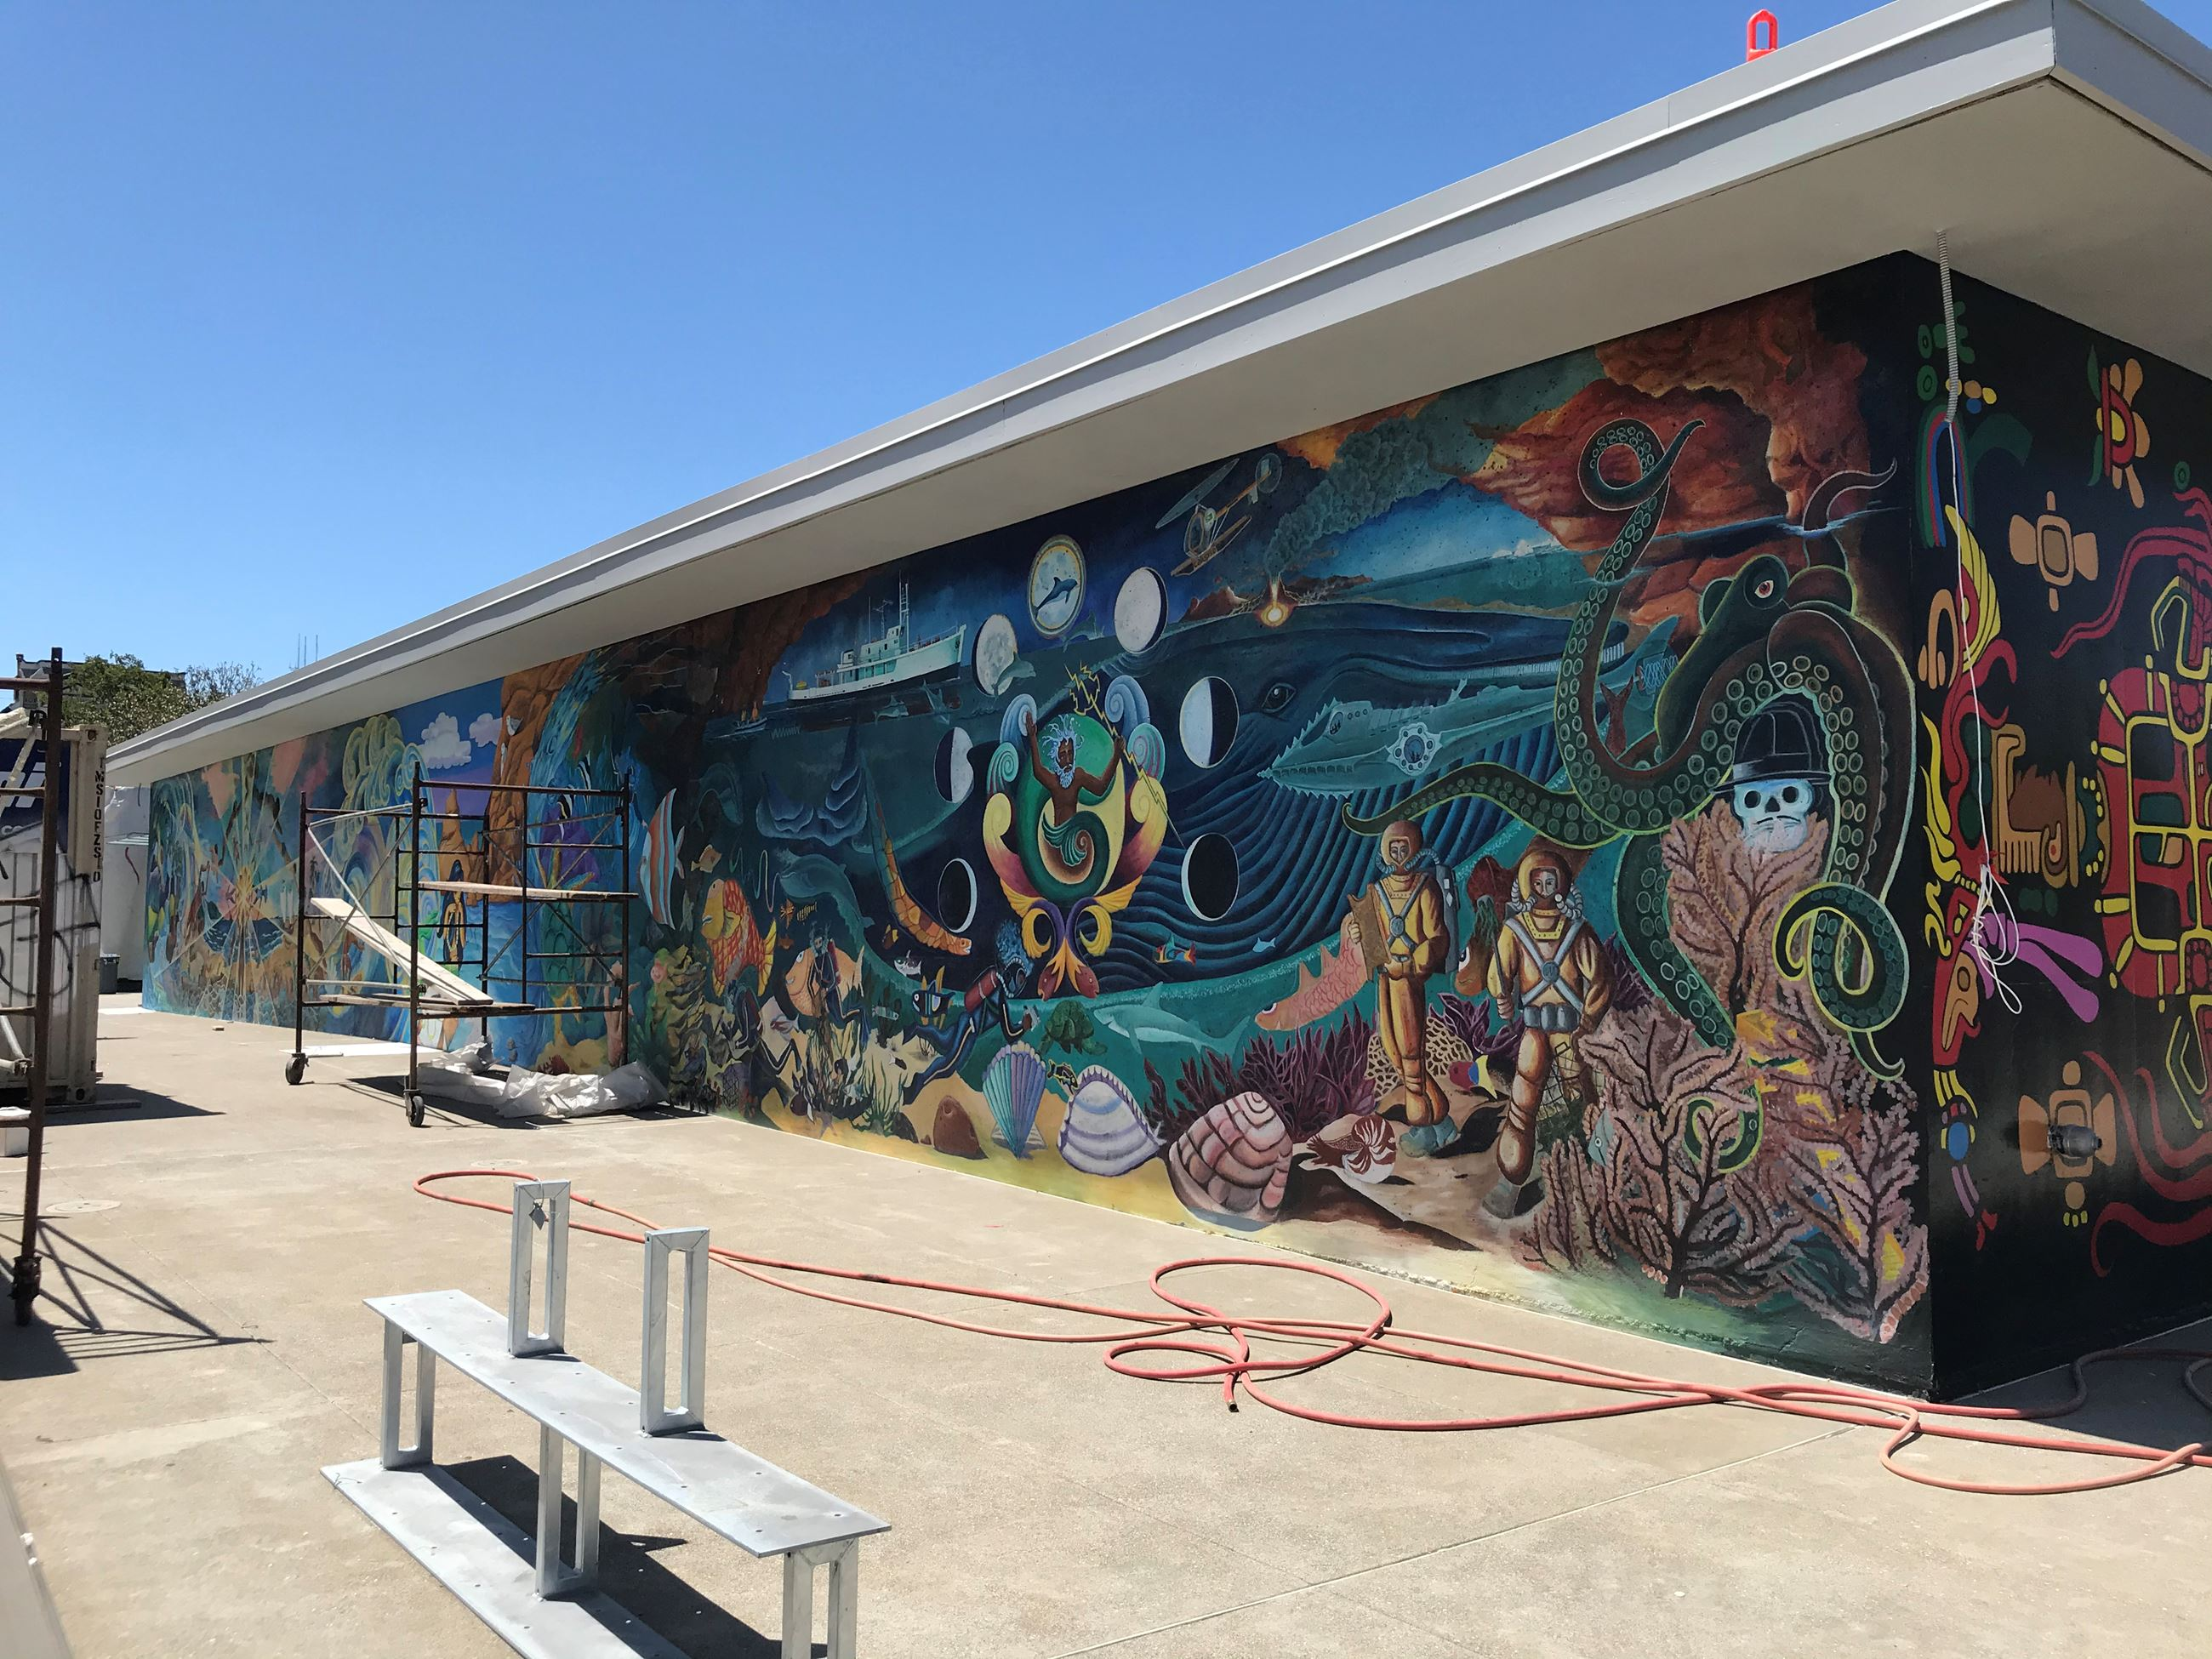 On the far left side of the mural is a green octopus underneath a red clay cliff, below is is two sc